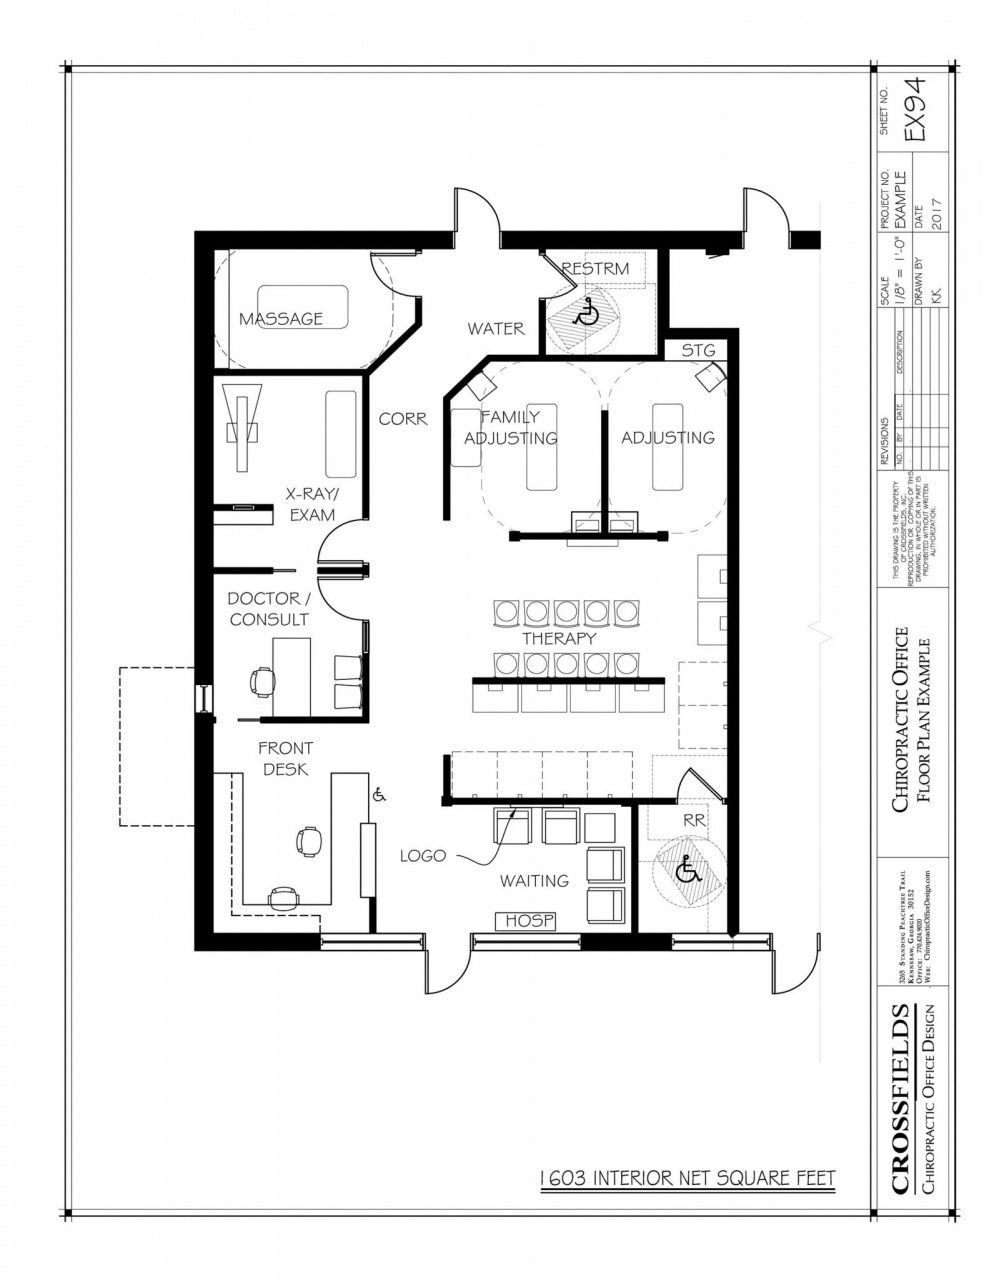 small 1 bedroom apartment floor plans modern day apartment modern rectangular house floor plan 2